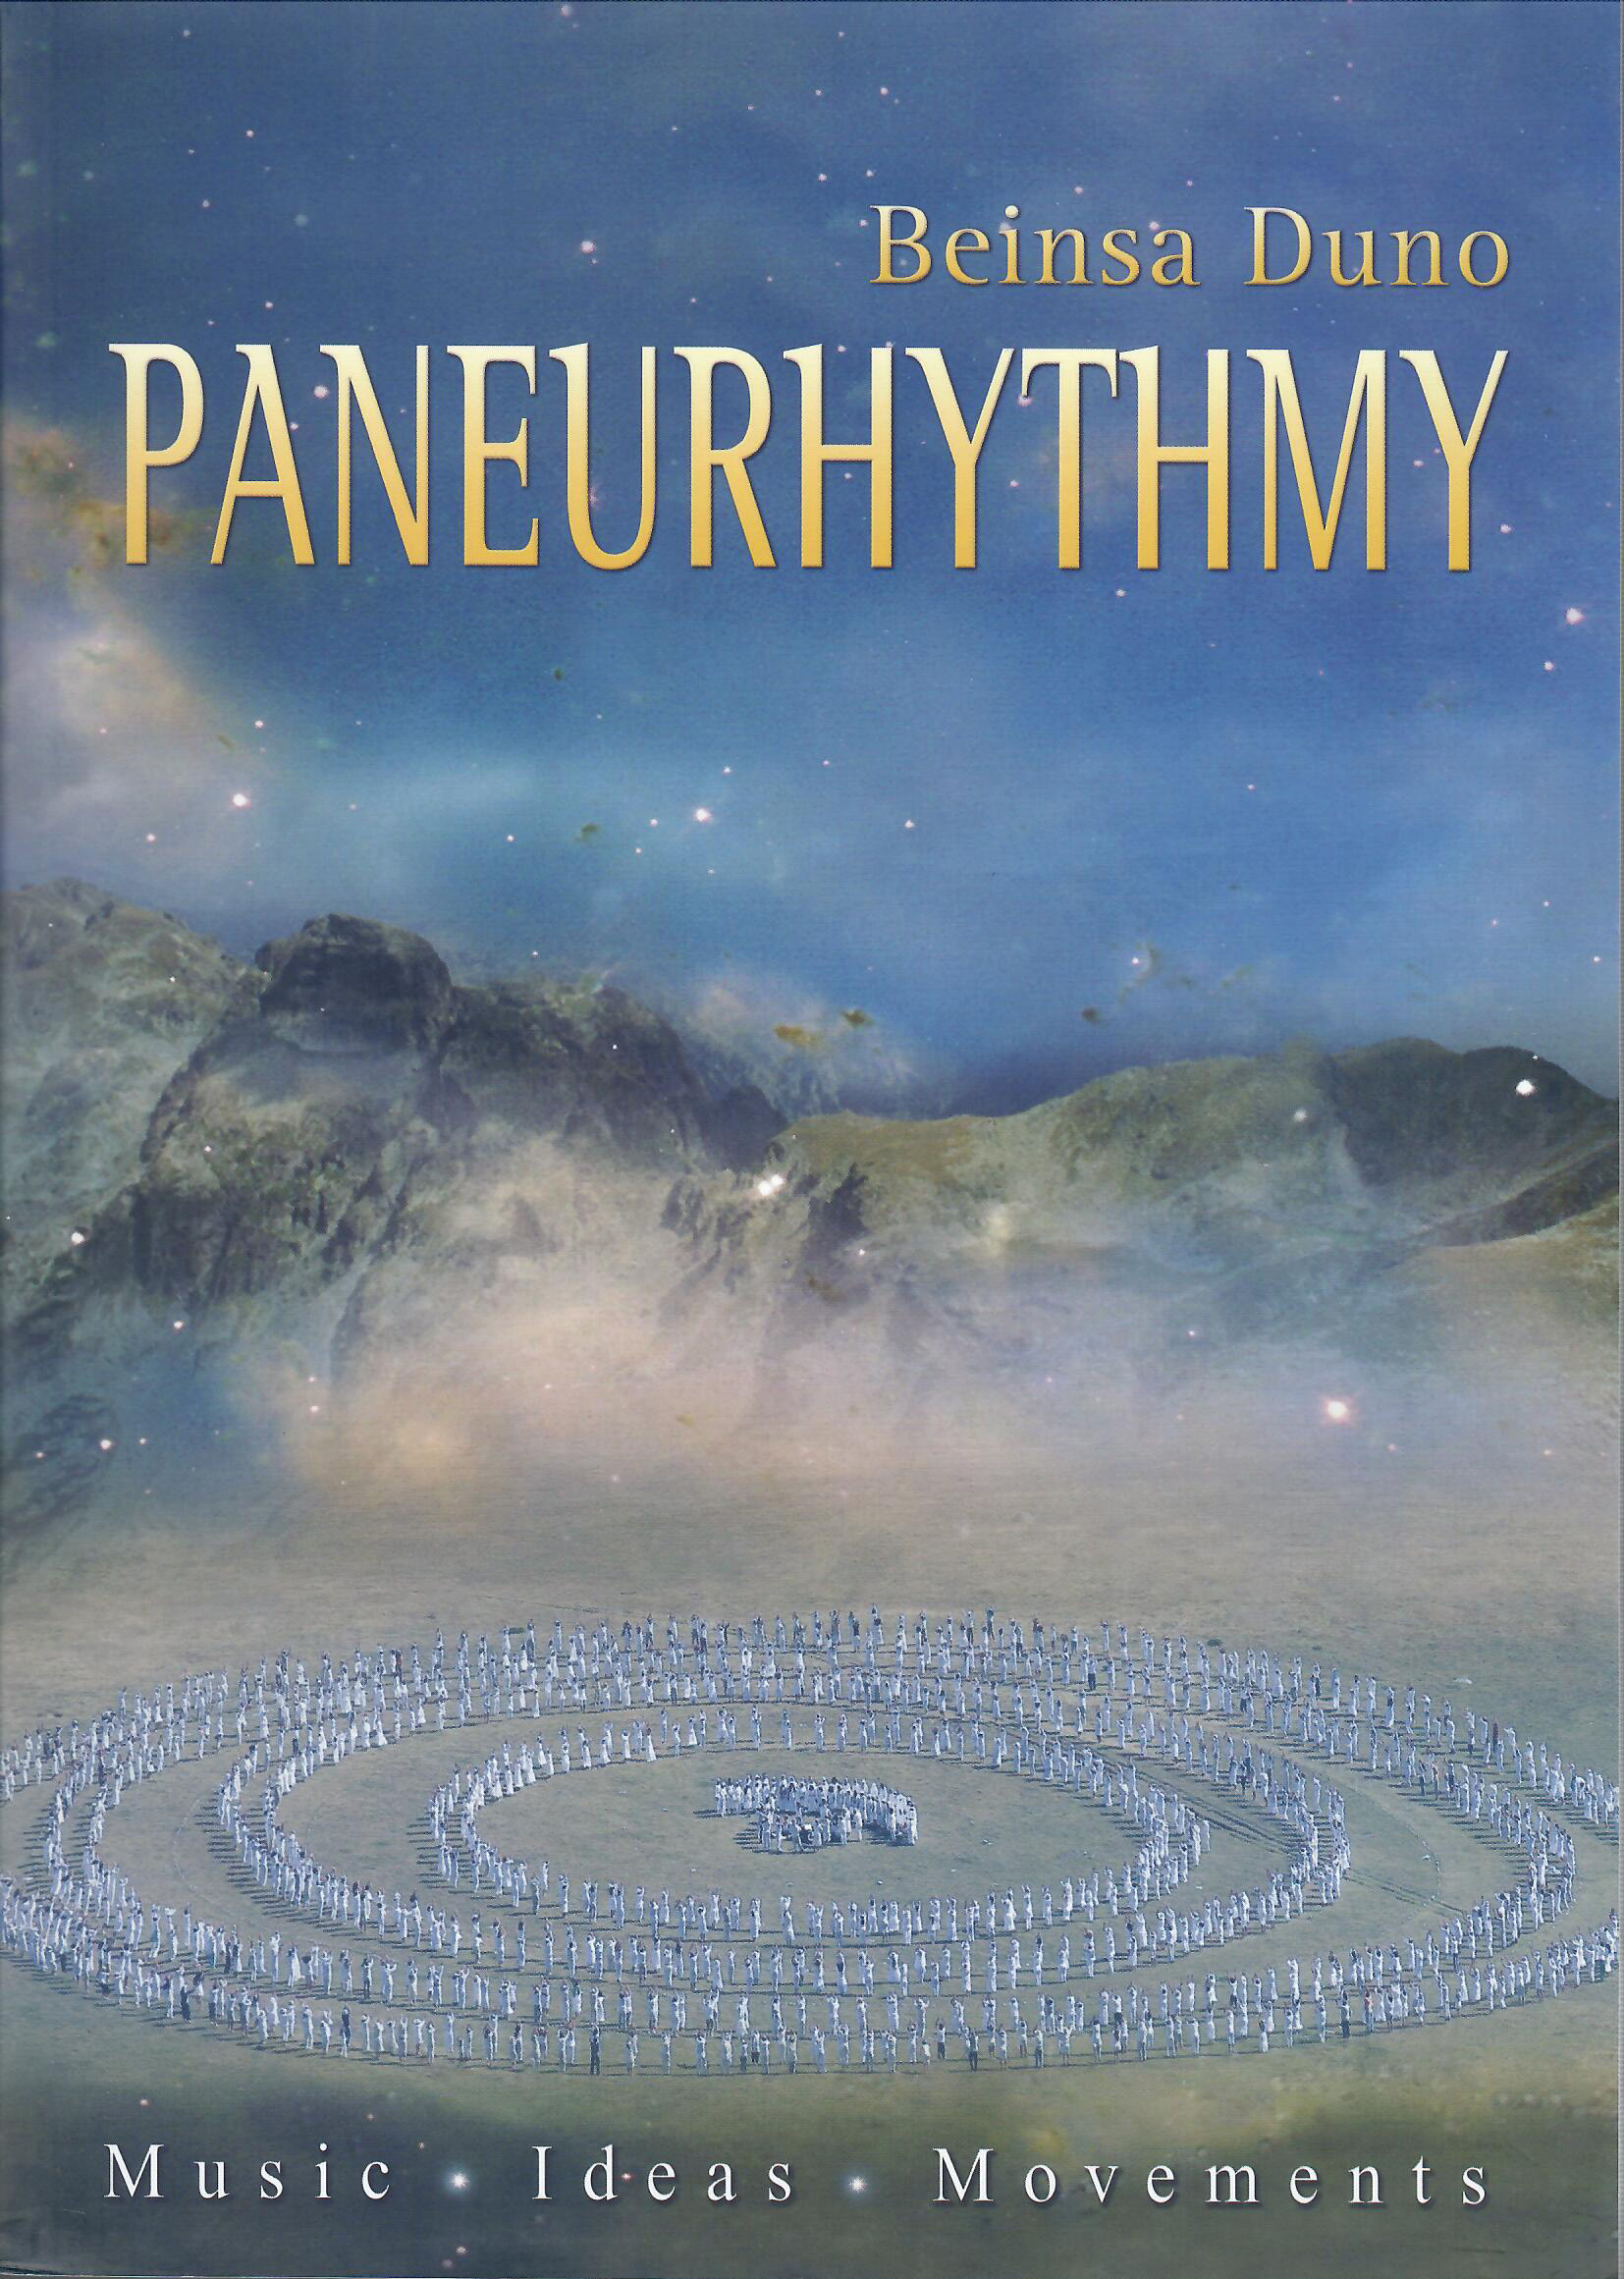 Paneurhythmy - Music, Ideas, Movements